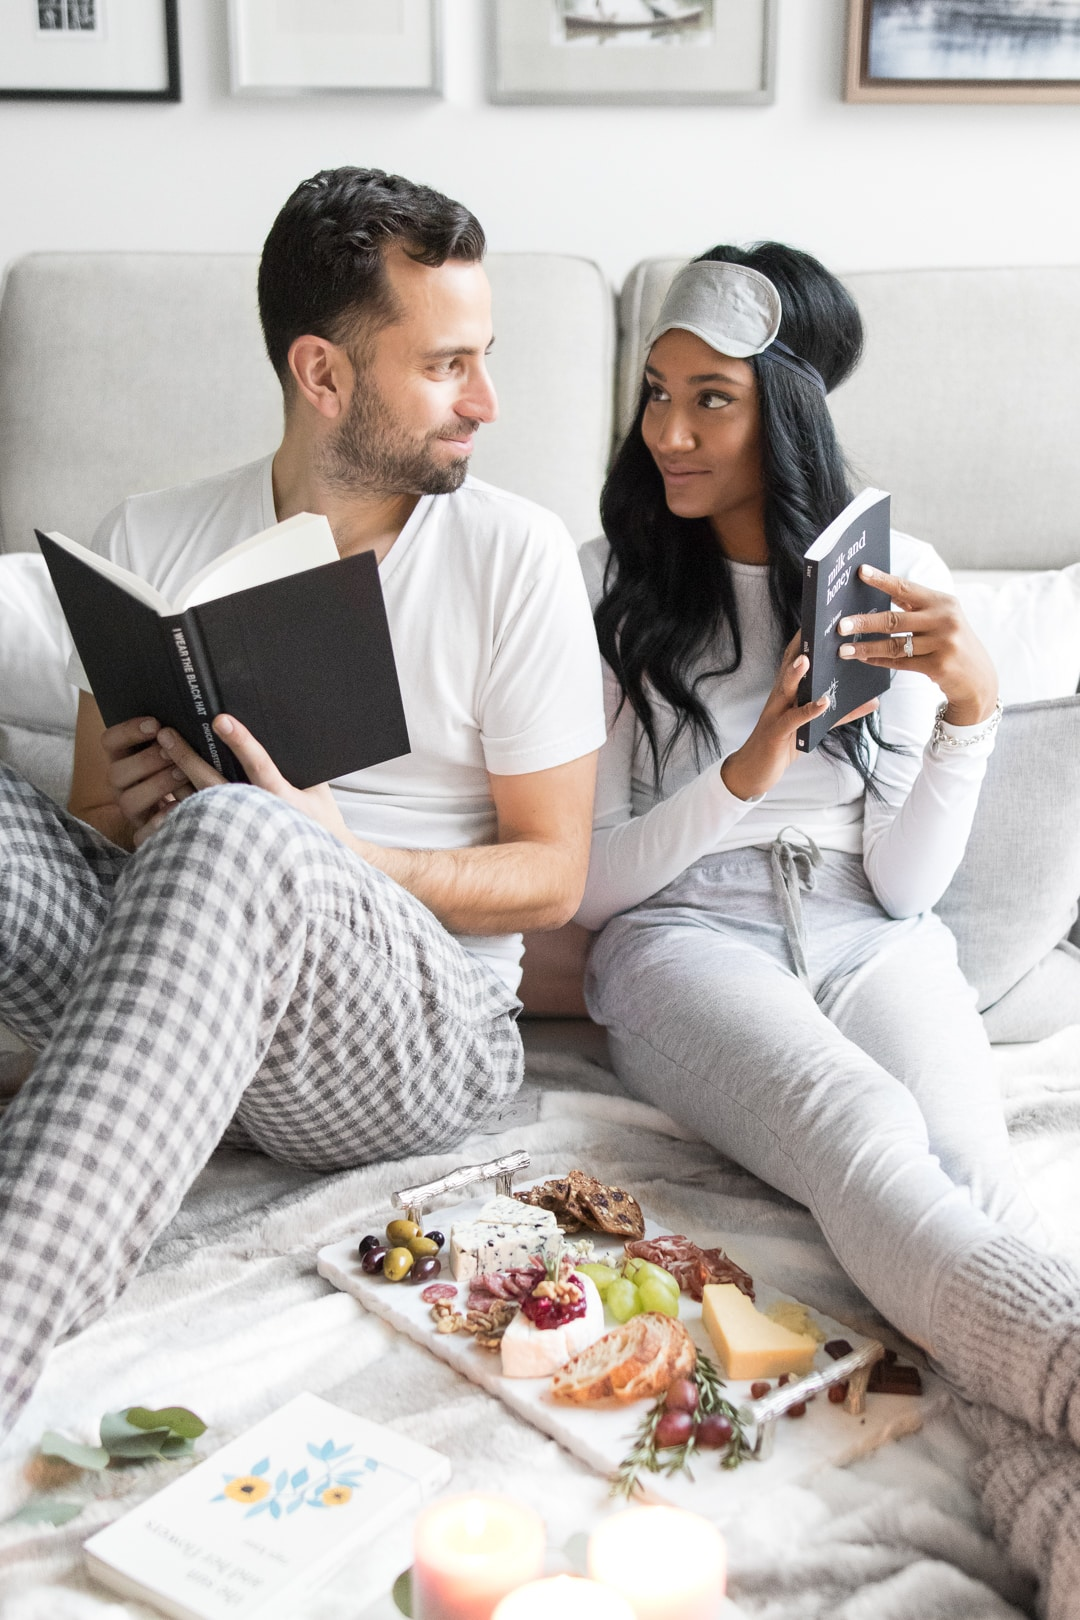 Young couple holding books and looking at each other while sitting next to a comforting cheeseboard.